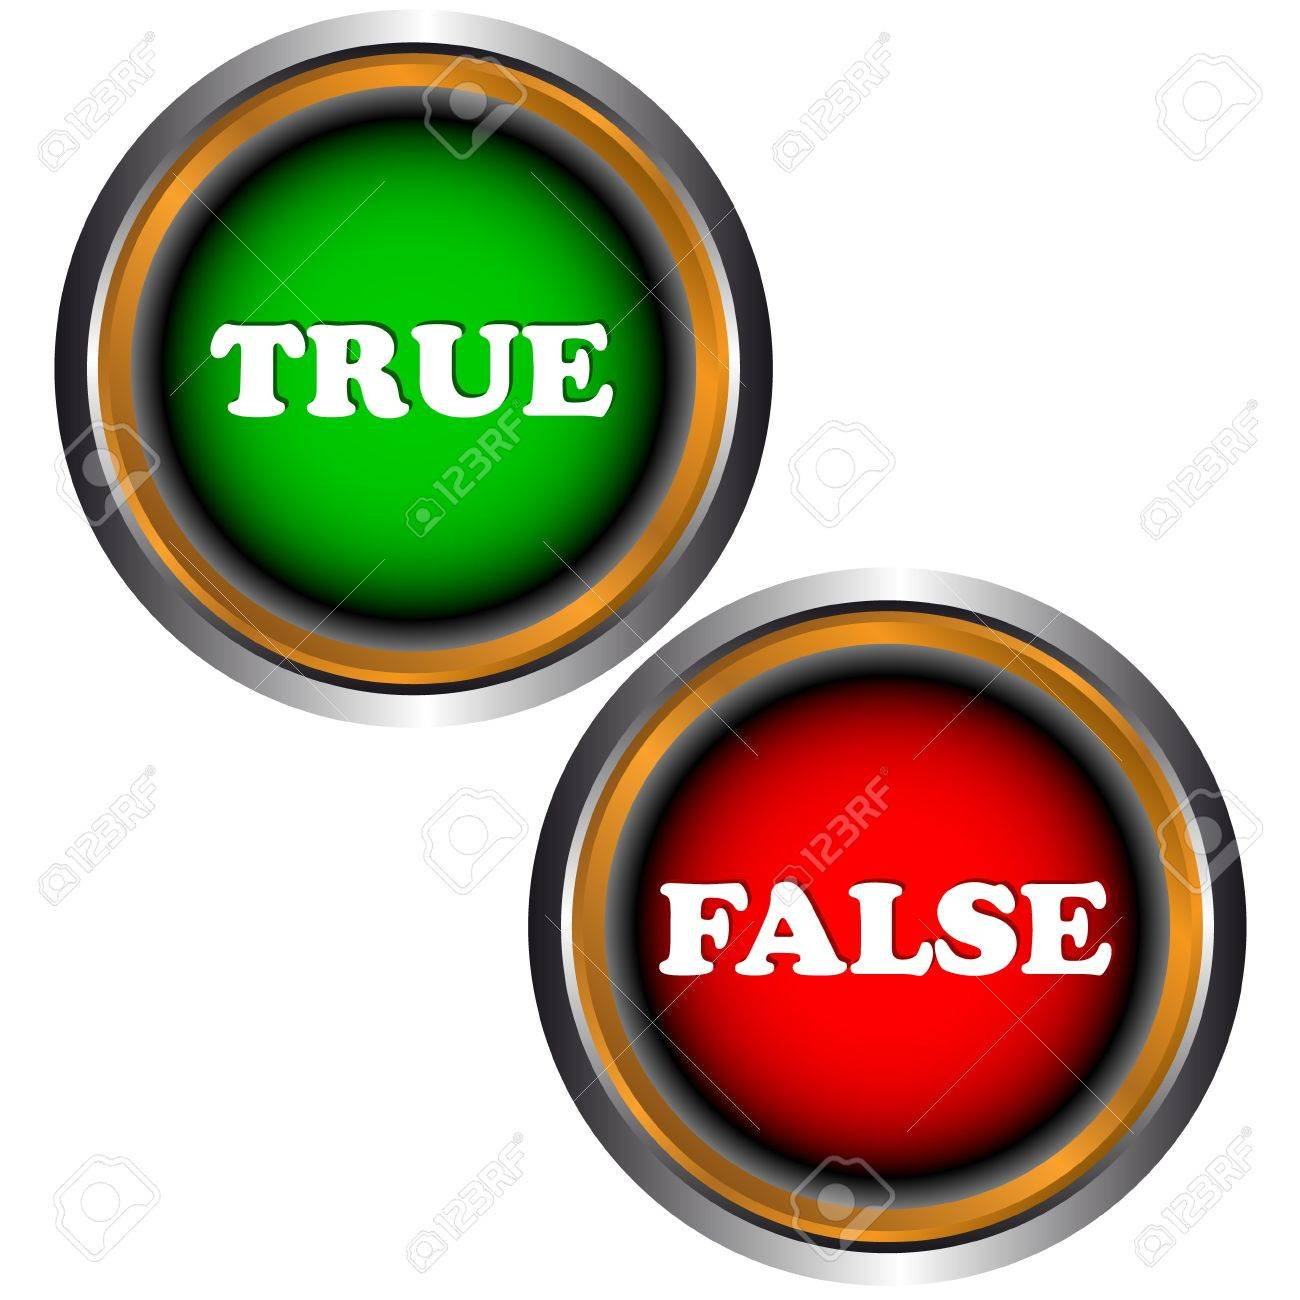 Buttons true and false on a white background Stock Vector - 16900277